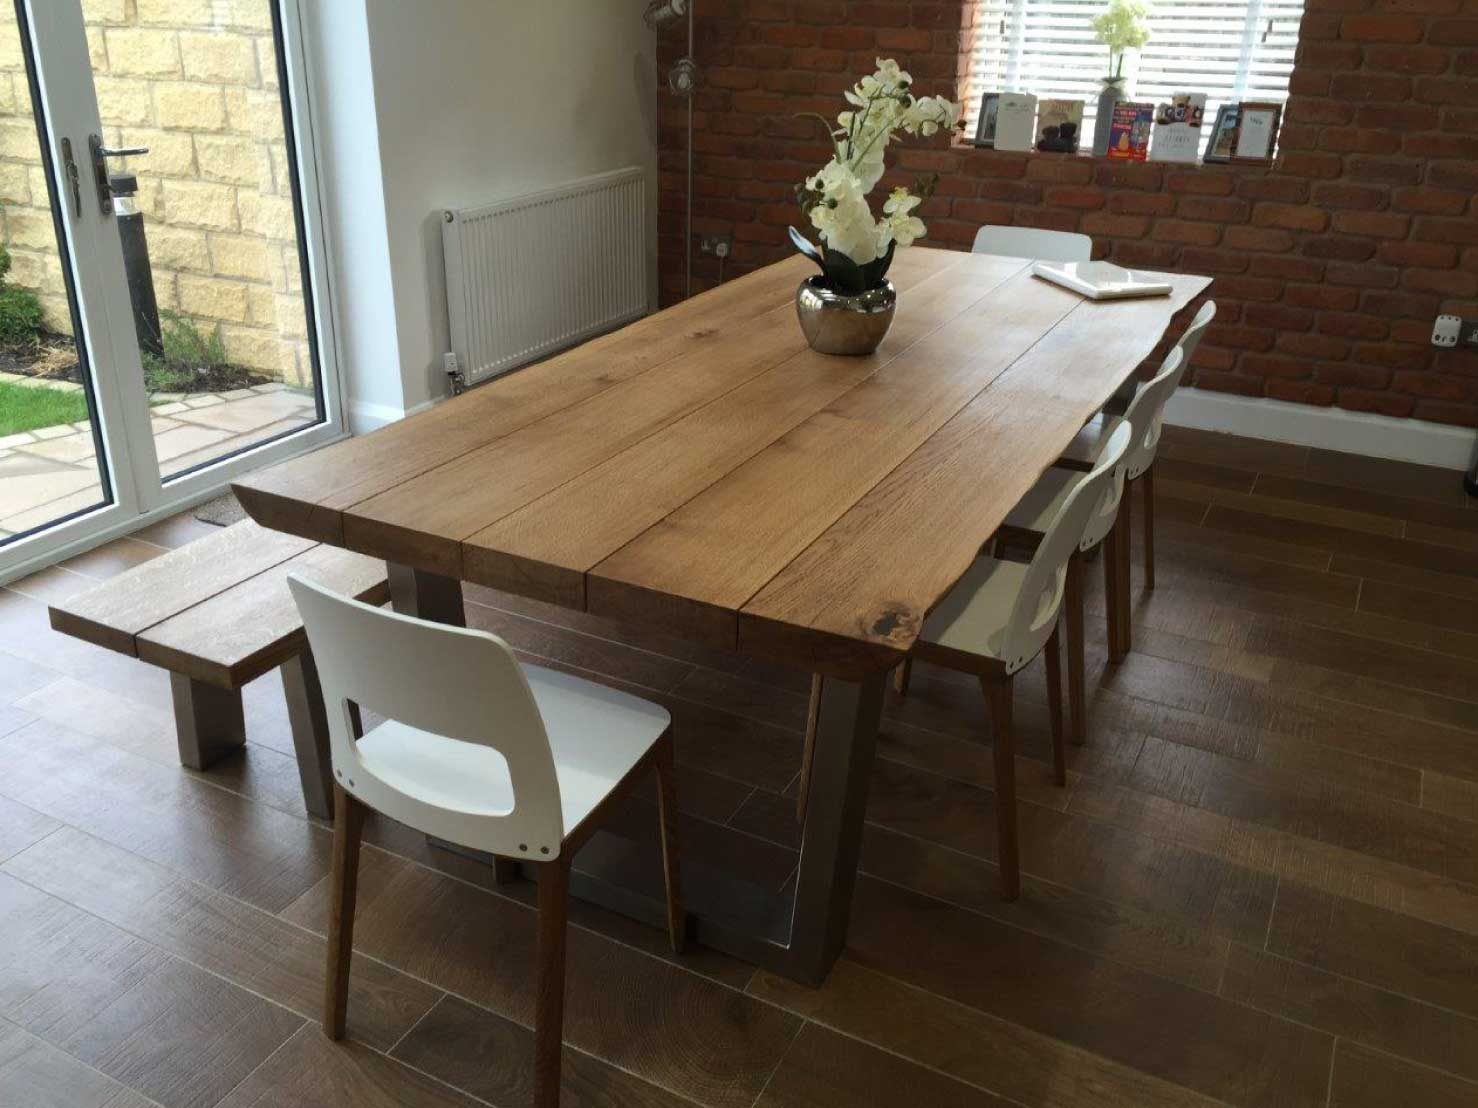 wood-dining-table-set-from-abacus-tables-komodo-2.4m-matching-chairs-&-bench-project-341